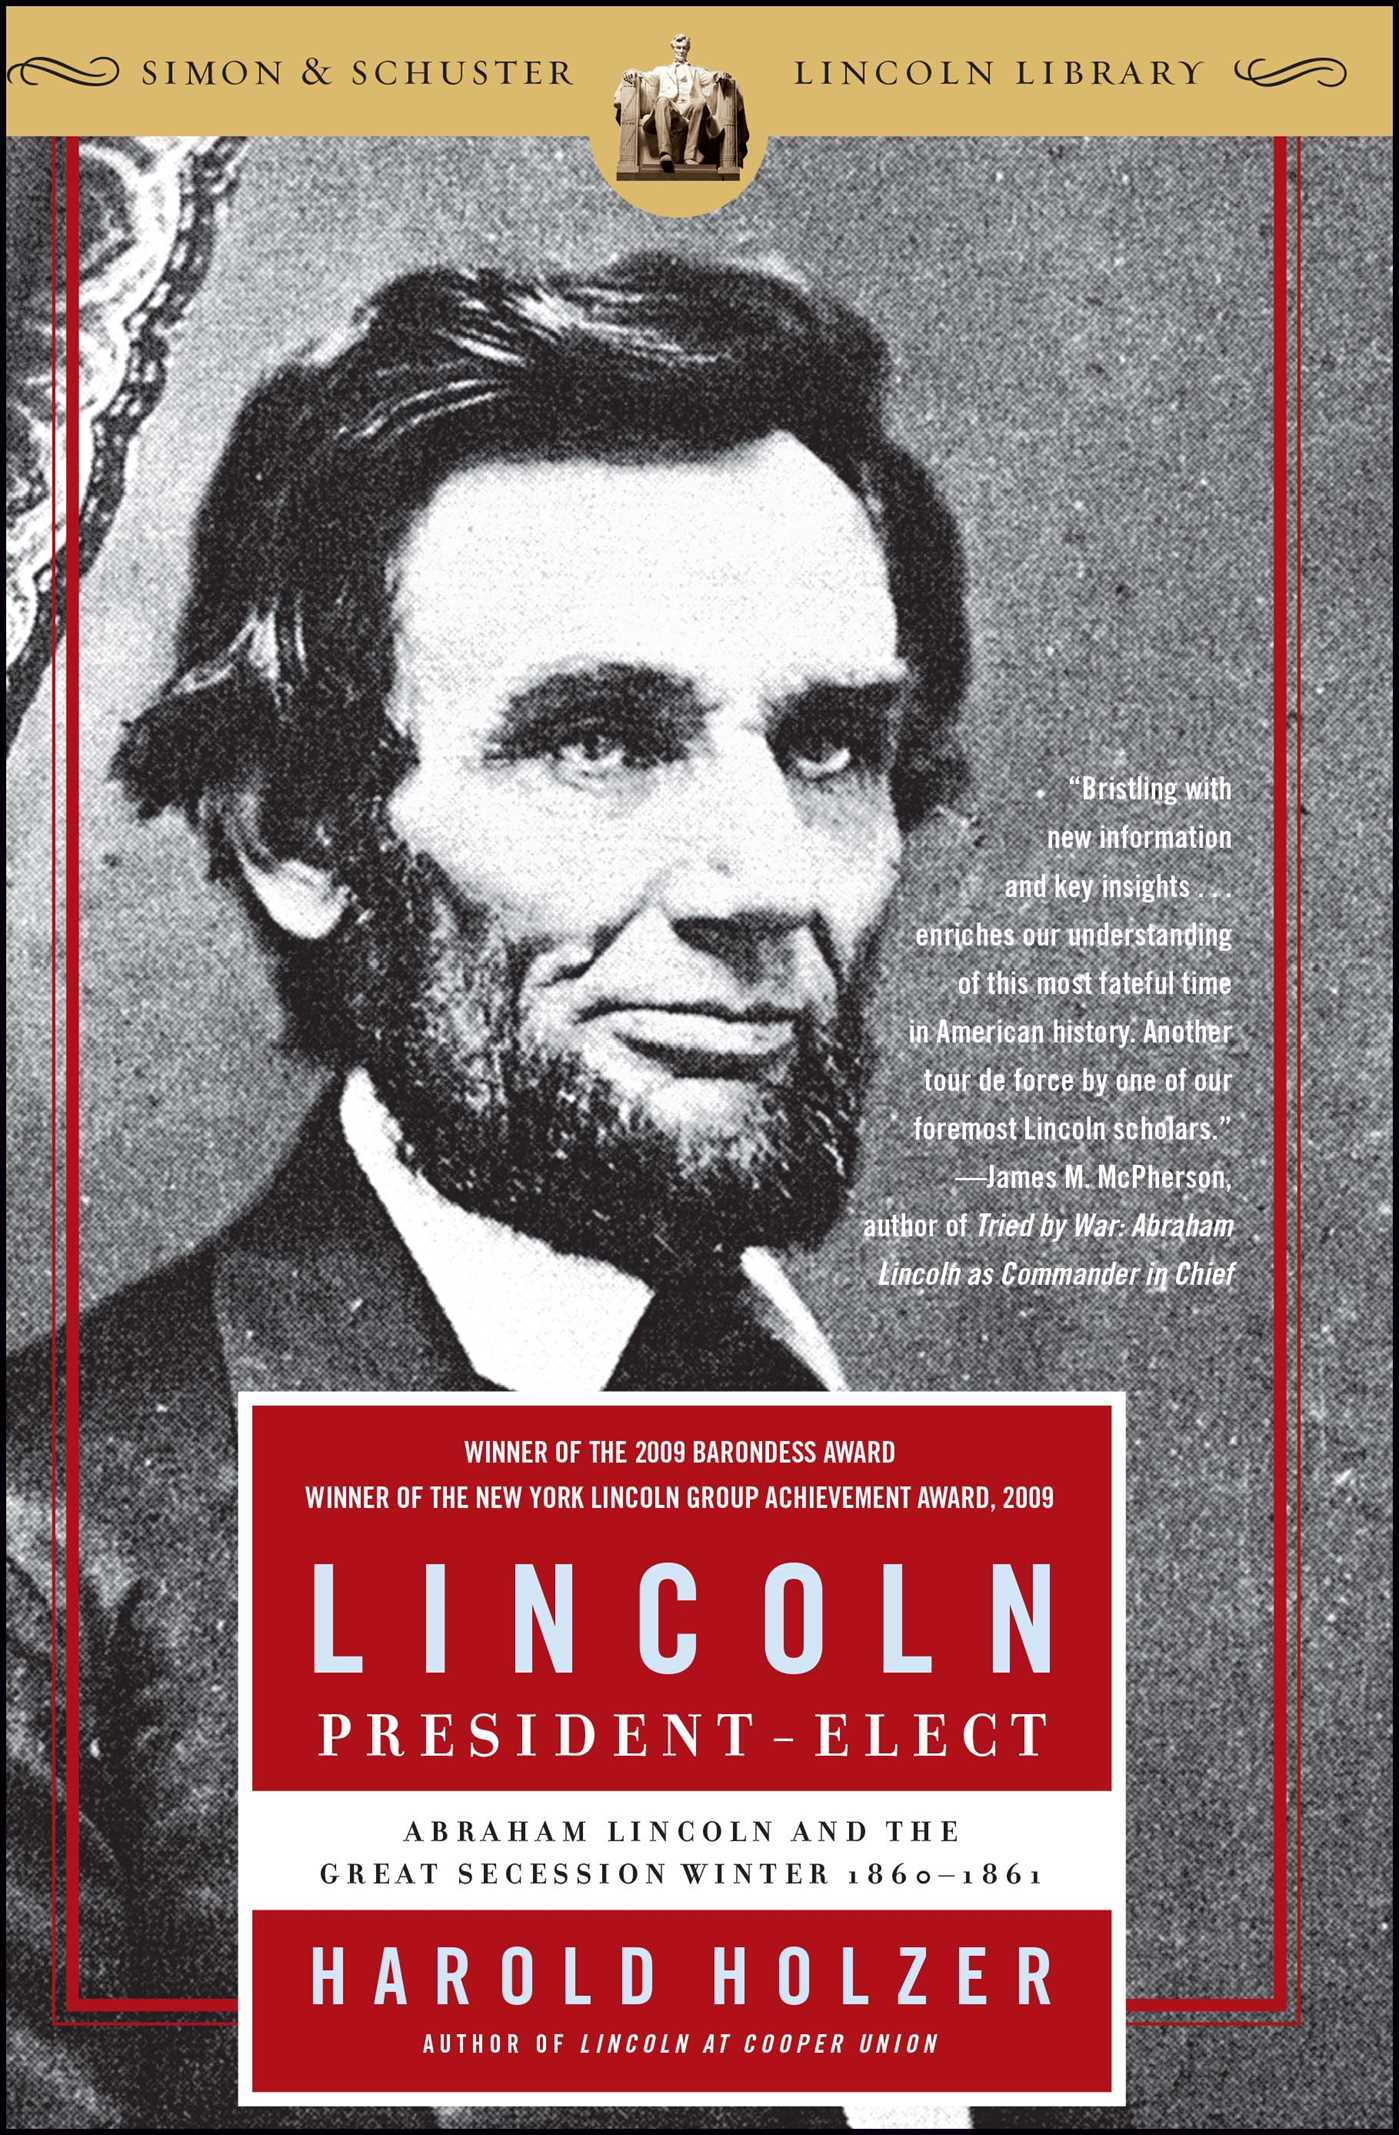 Lincoln president elect 9780743289481 hr